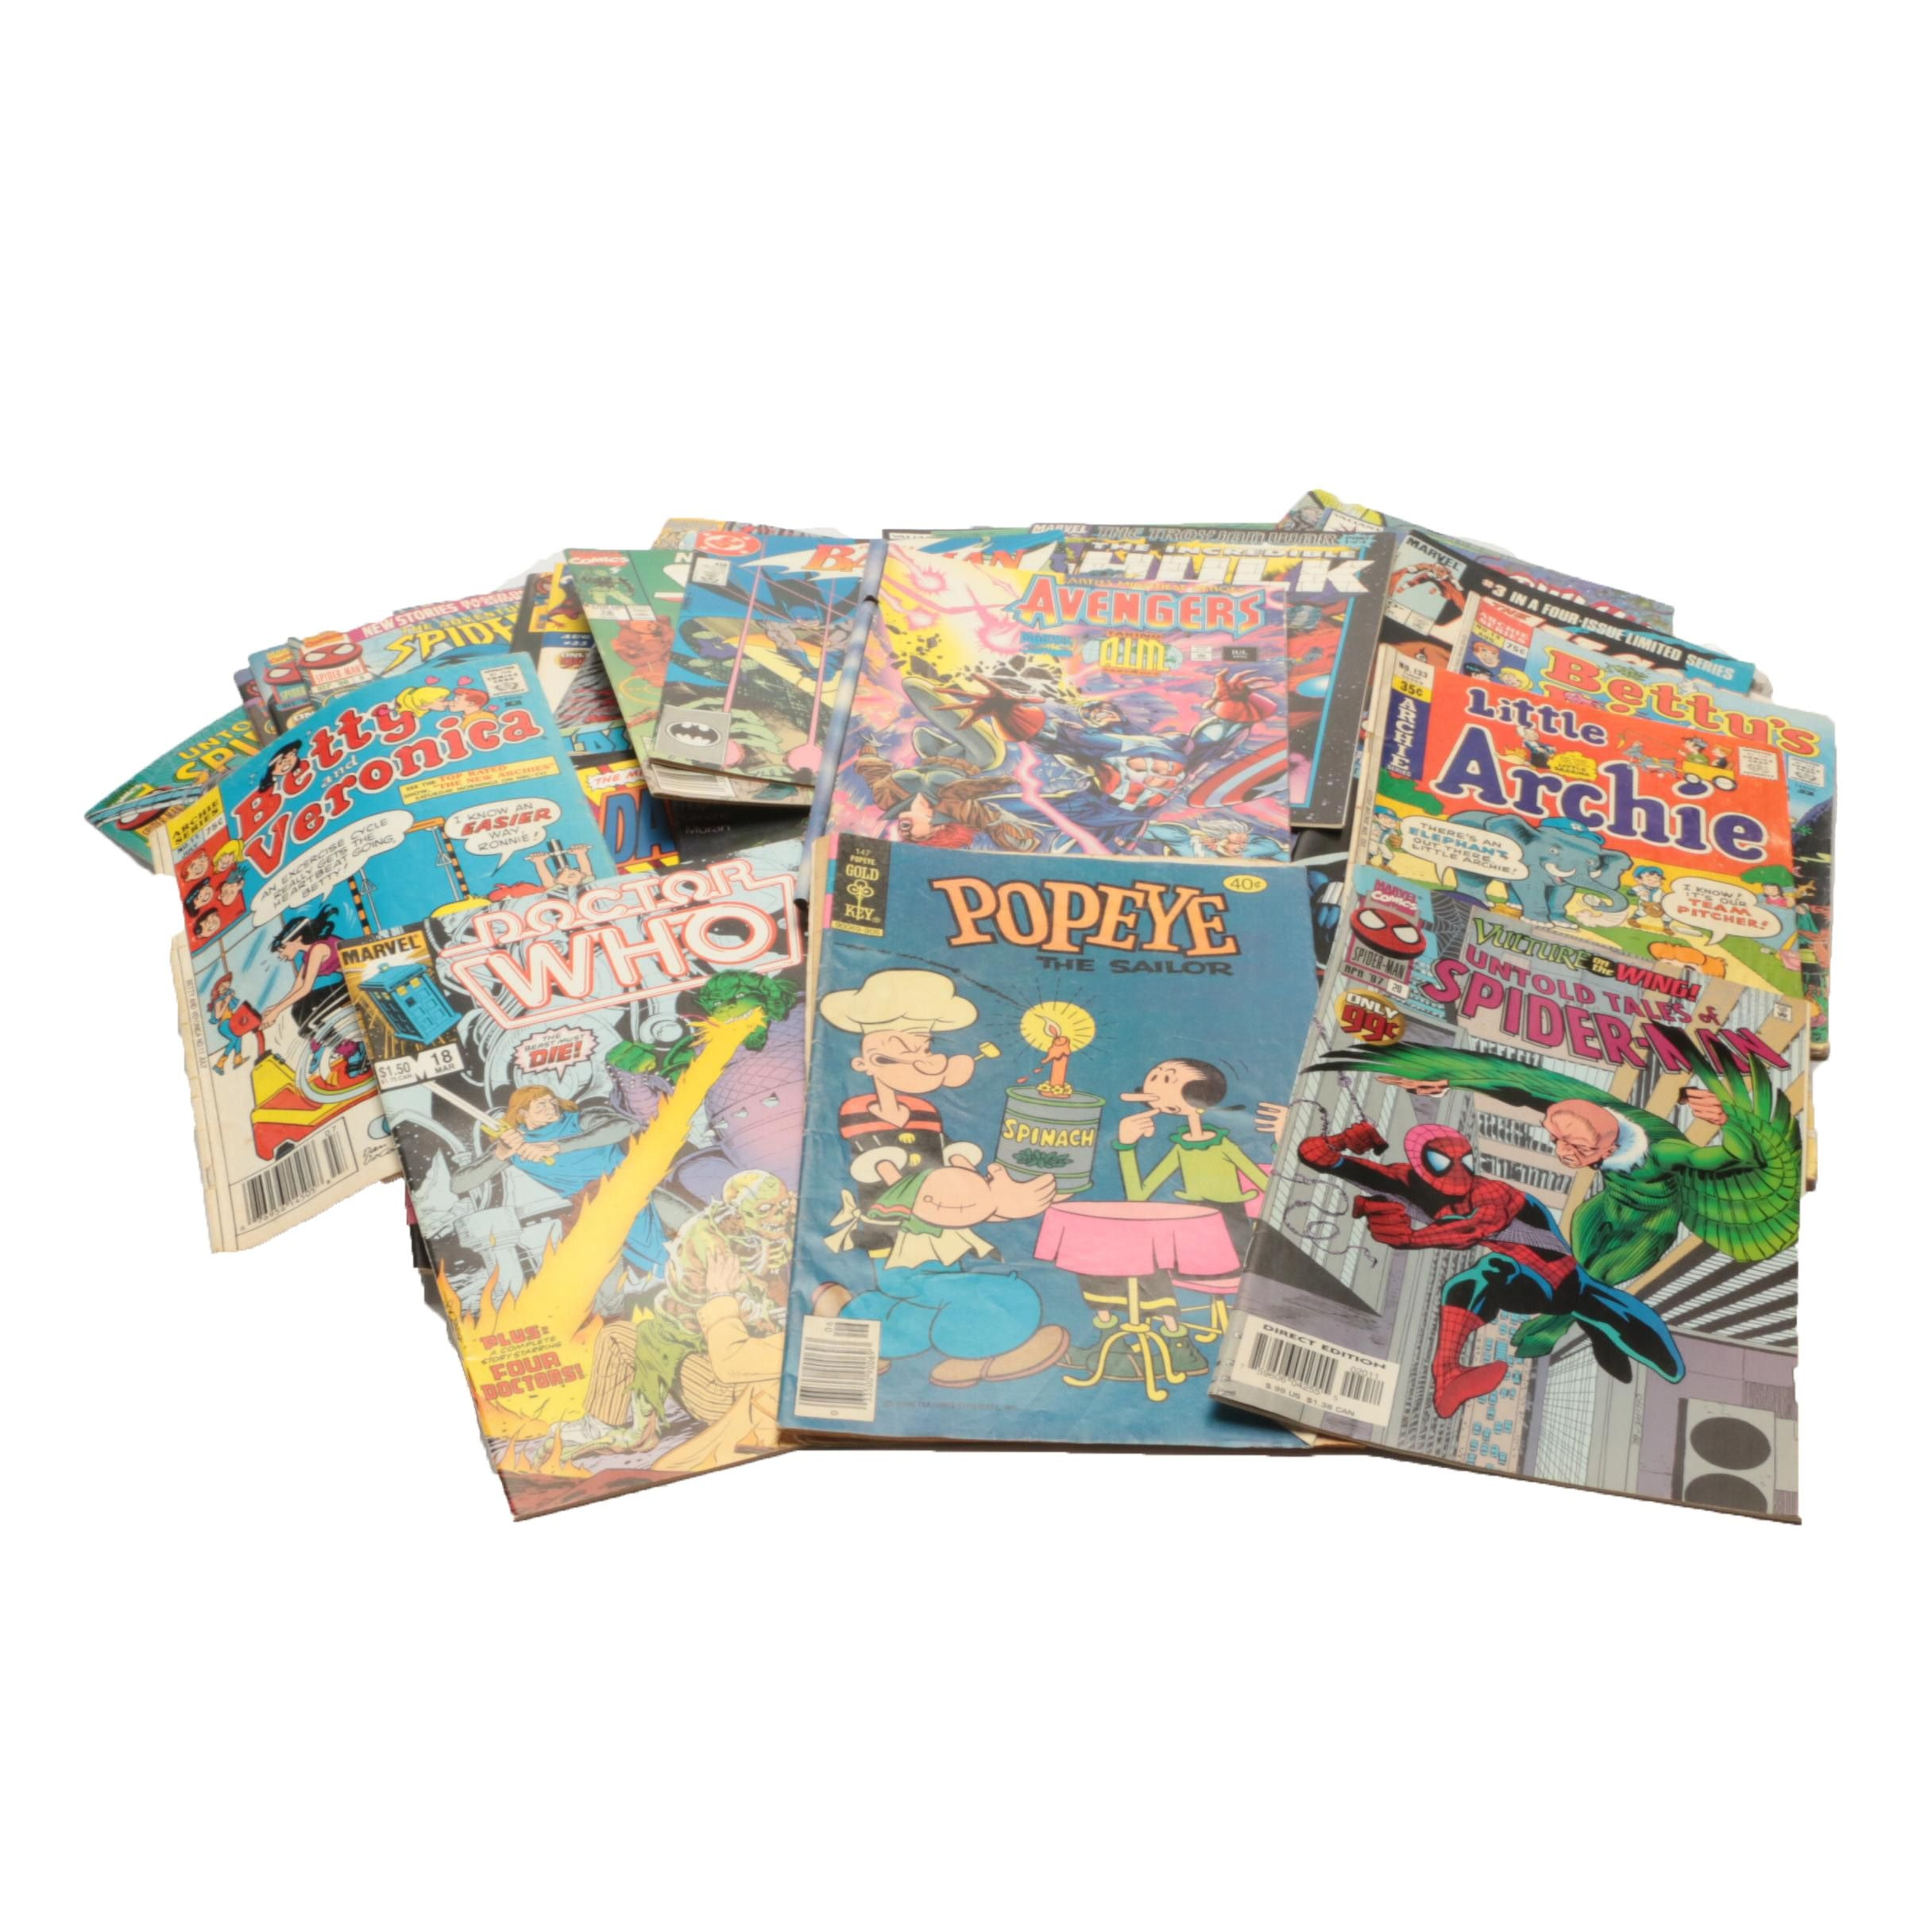 """Assorted Comic Books Featuring """"Spiderman"""", """"Avengers"""", and Walt Disney"""""""